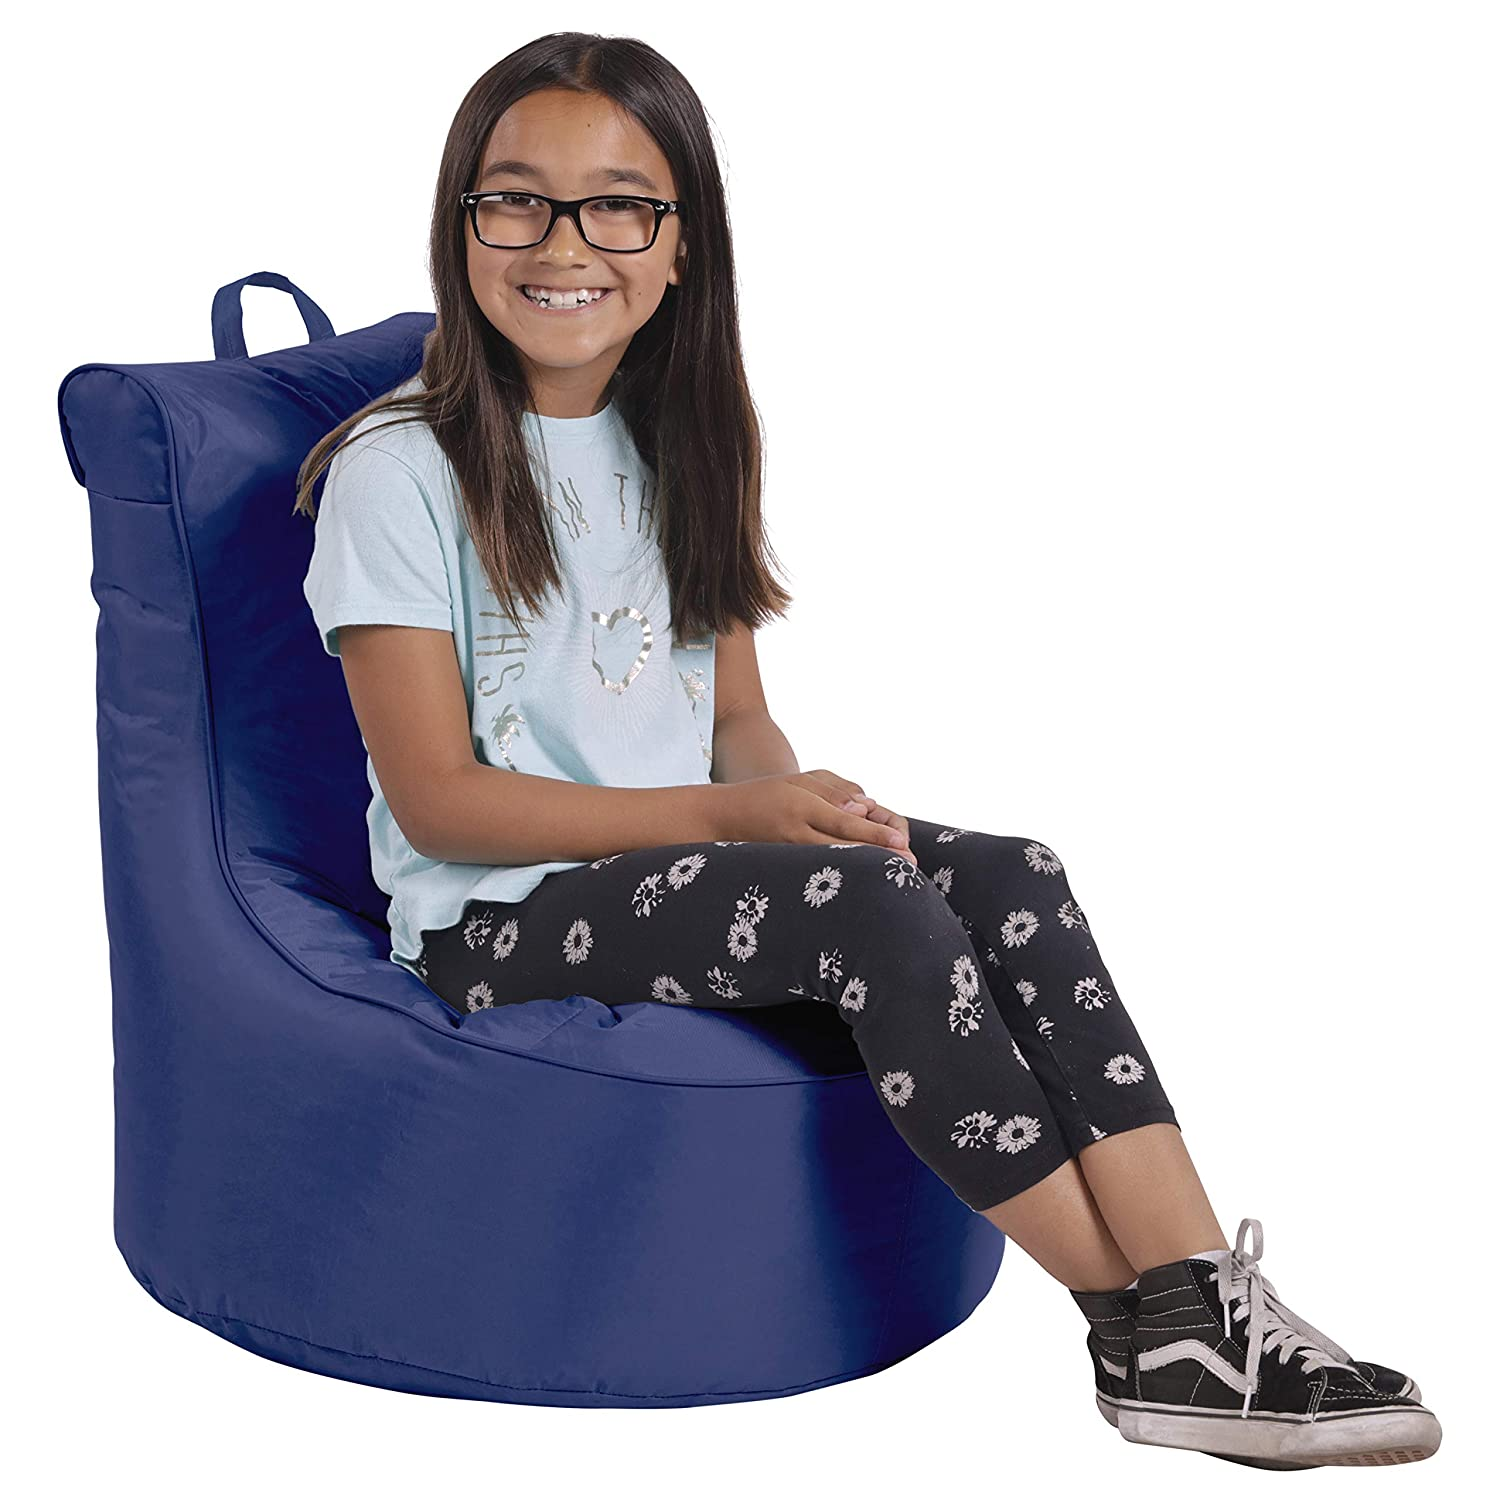 Cali Paddle Out Sack Bean Bag Chair, Dirt-Resistant Coated Oxford Fabric, Flexible Seating for Kids, Teens, Adults, Furniture for Bedrooms, Dorm Rooms, Classrooms - Navy